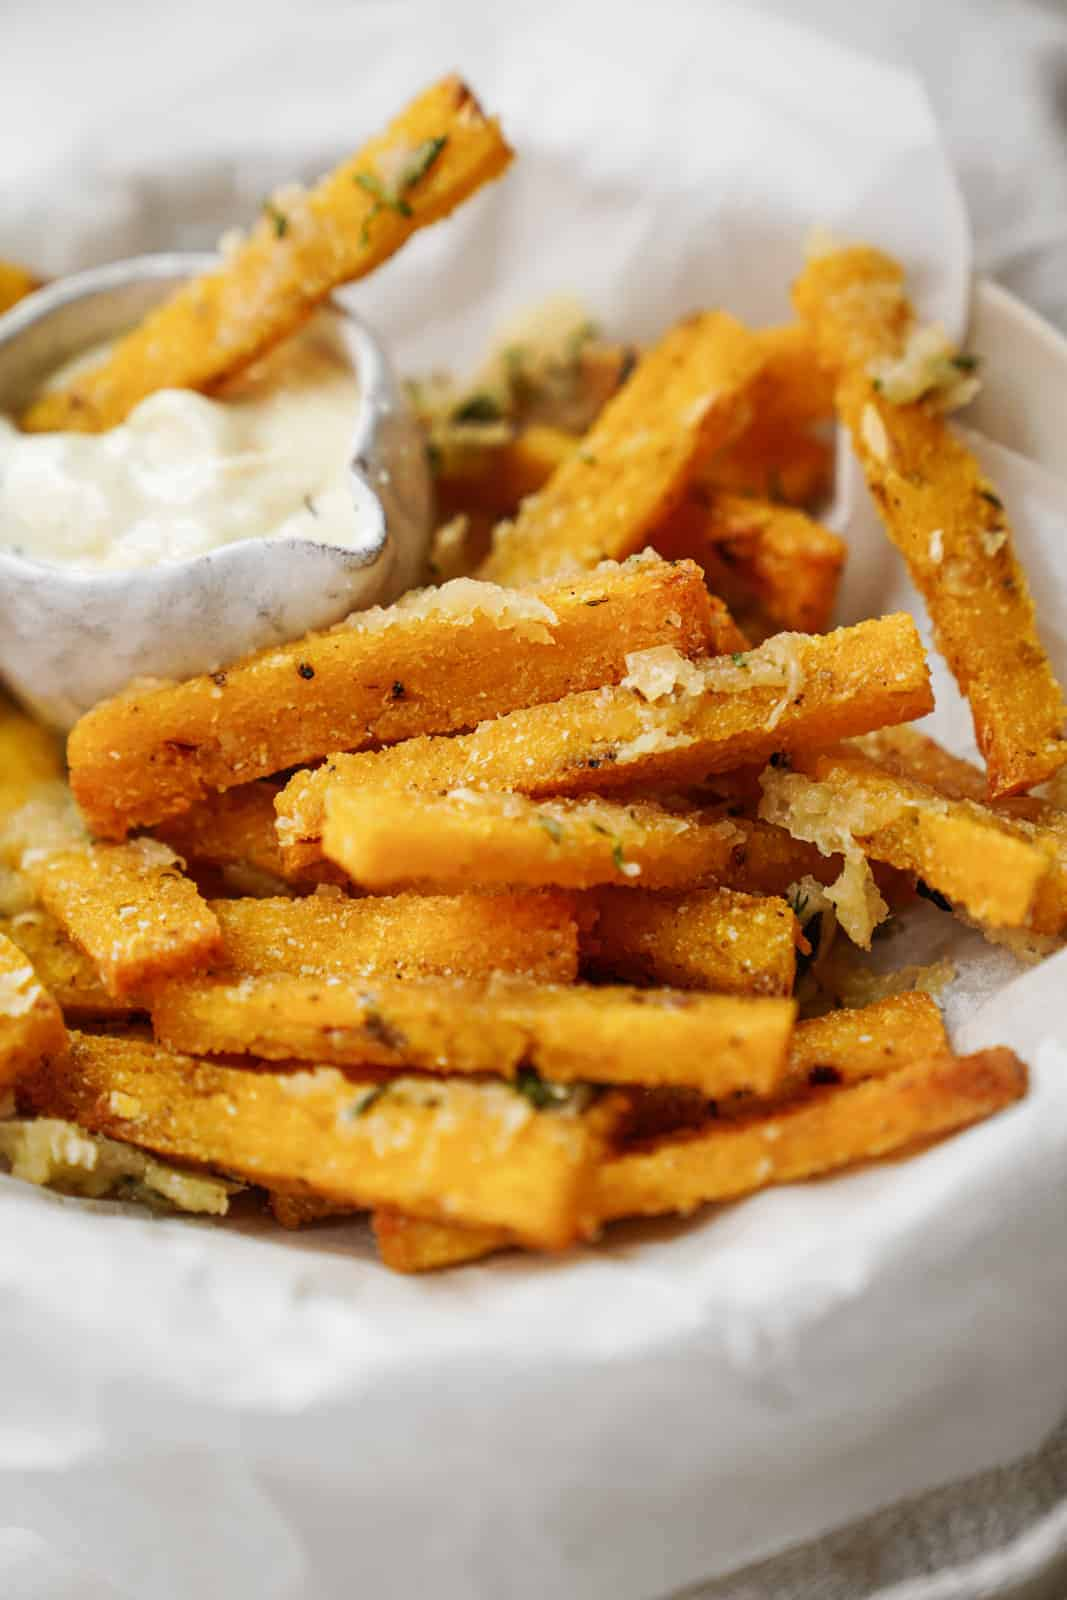 A bowl of vegan polenta fries with a side of vegan aioli